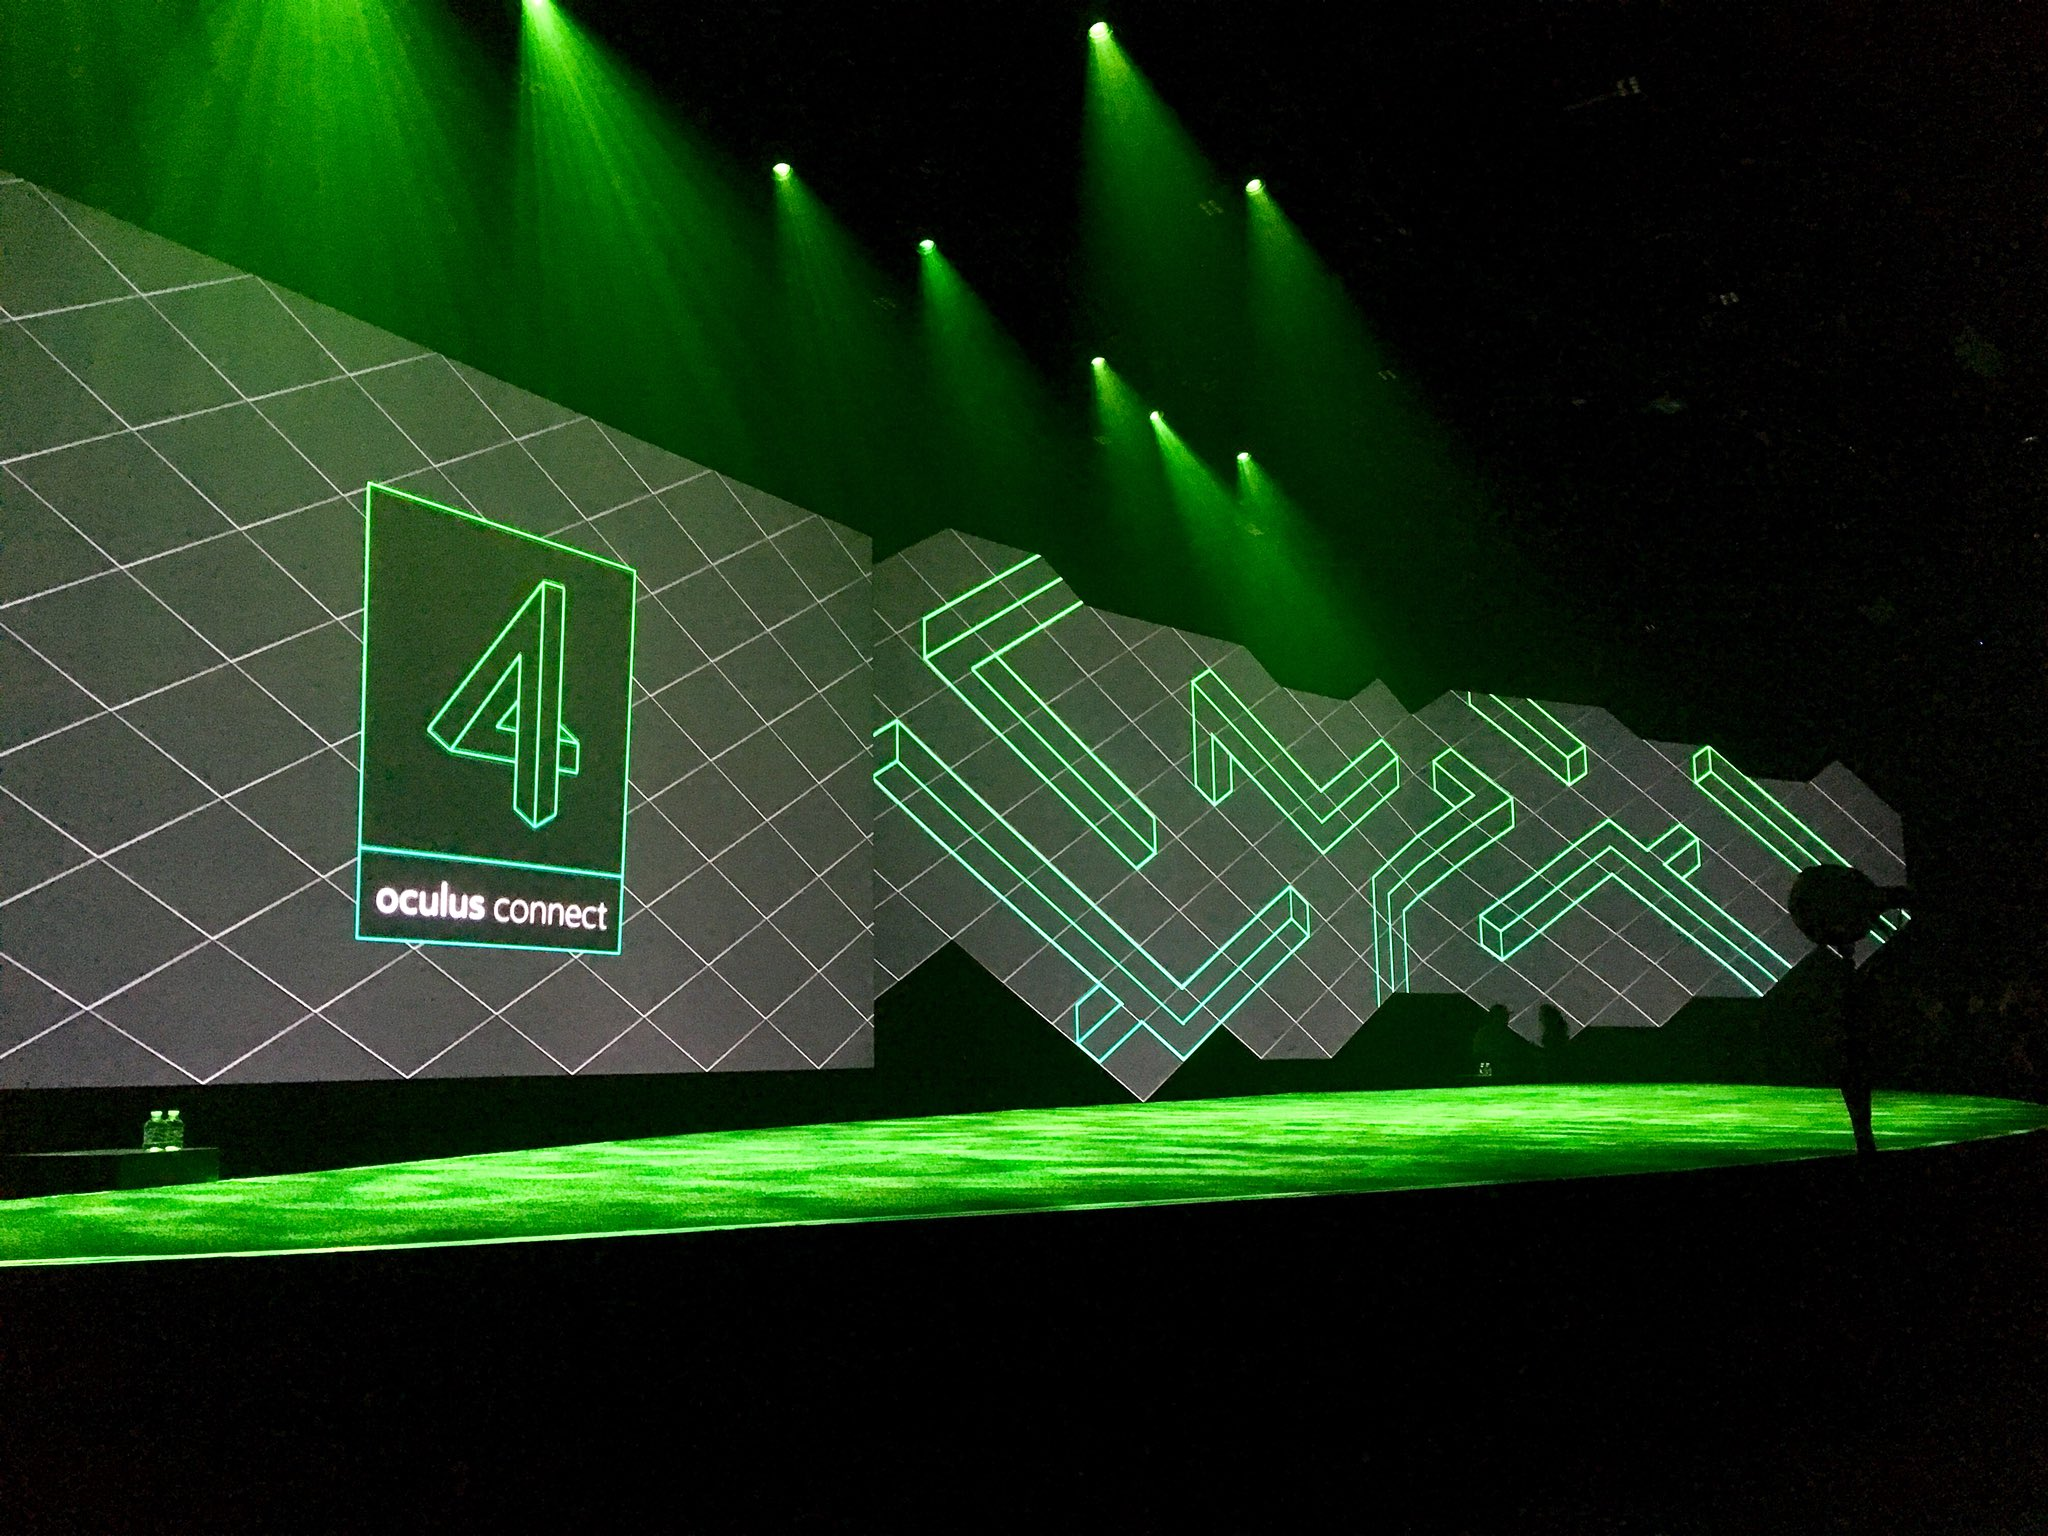 DL3wJ7VUEAAmcbP.jpg  Live From Mark Zuckerberg's #OculusConnect Keynote DL3wJ7VUEAAmcbP